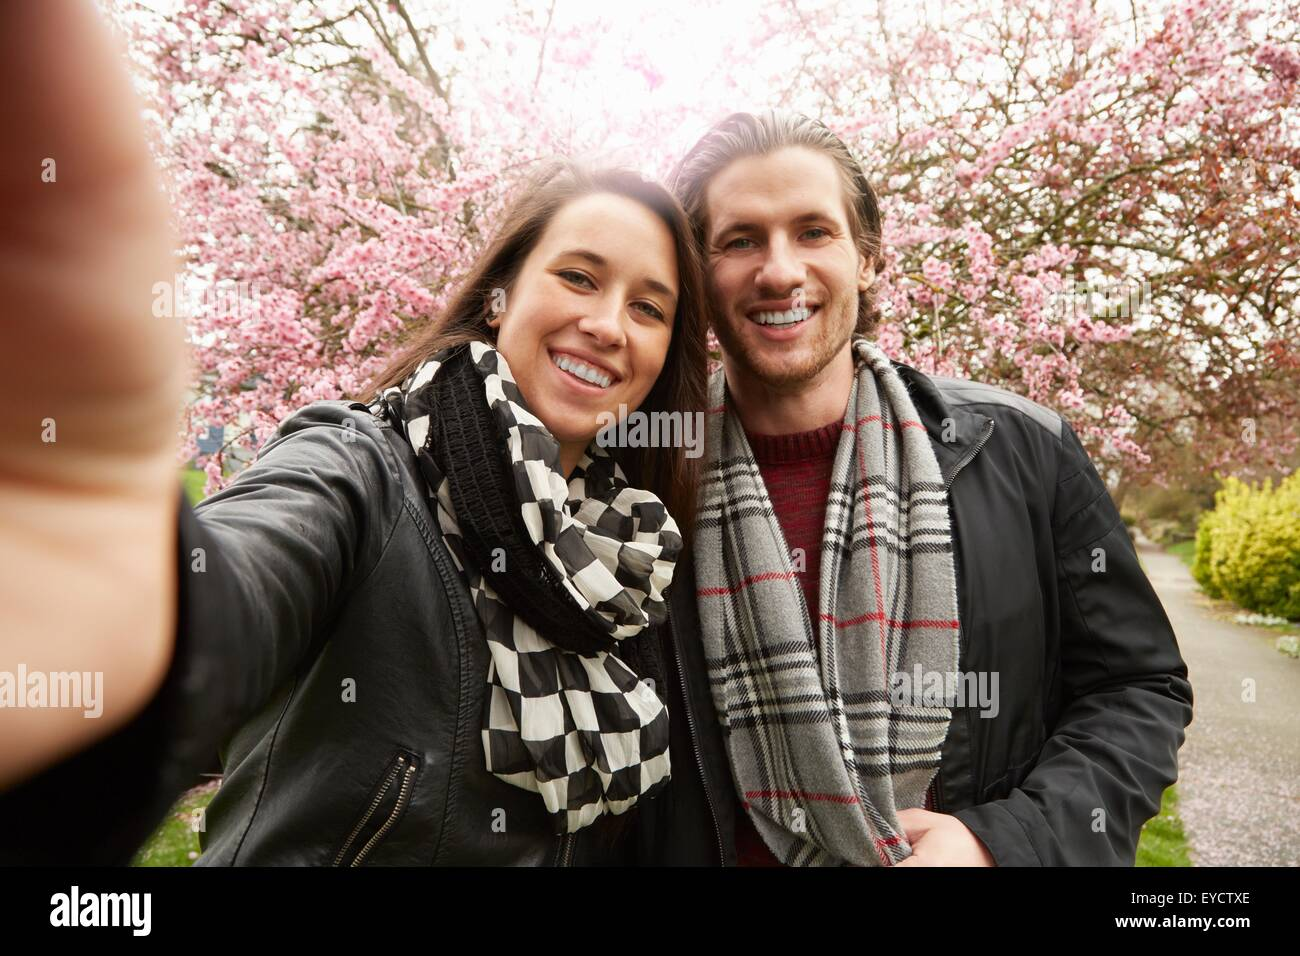 Young couple posing for selfie with blossom in park - Stock Image